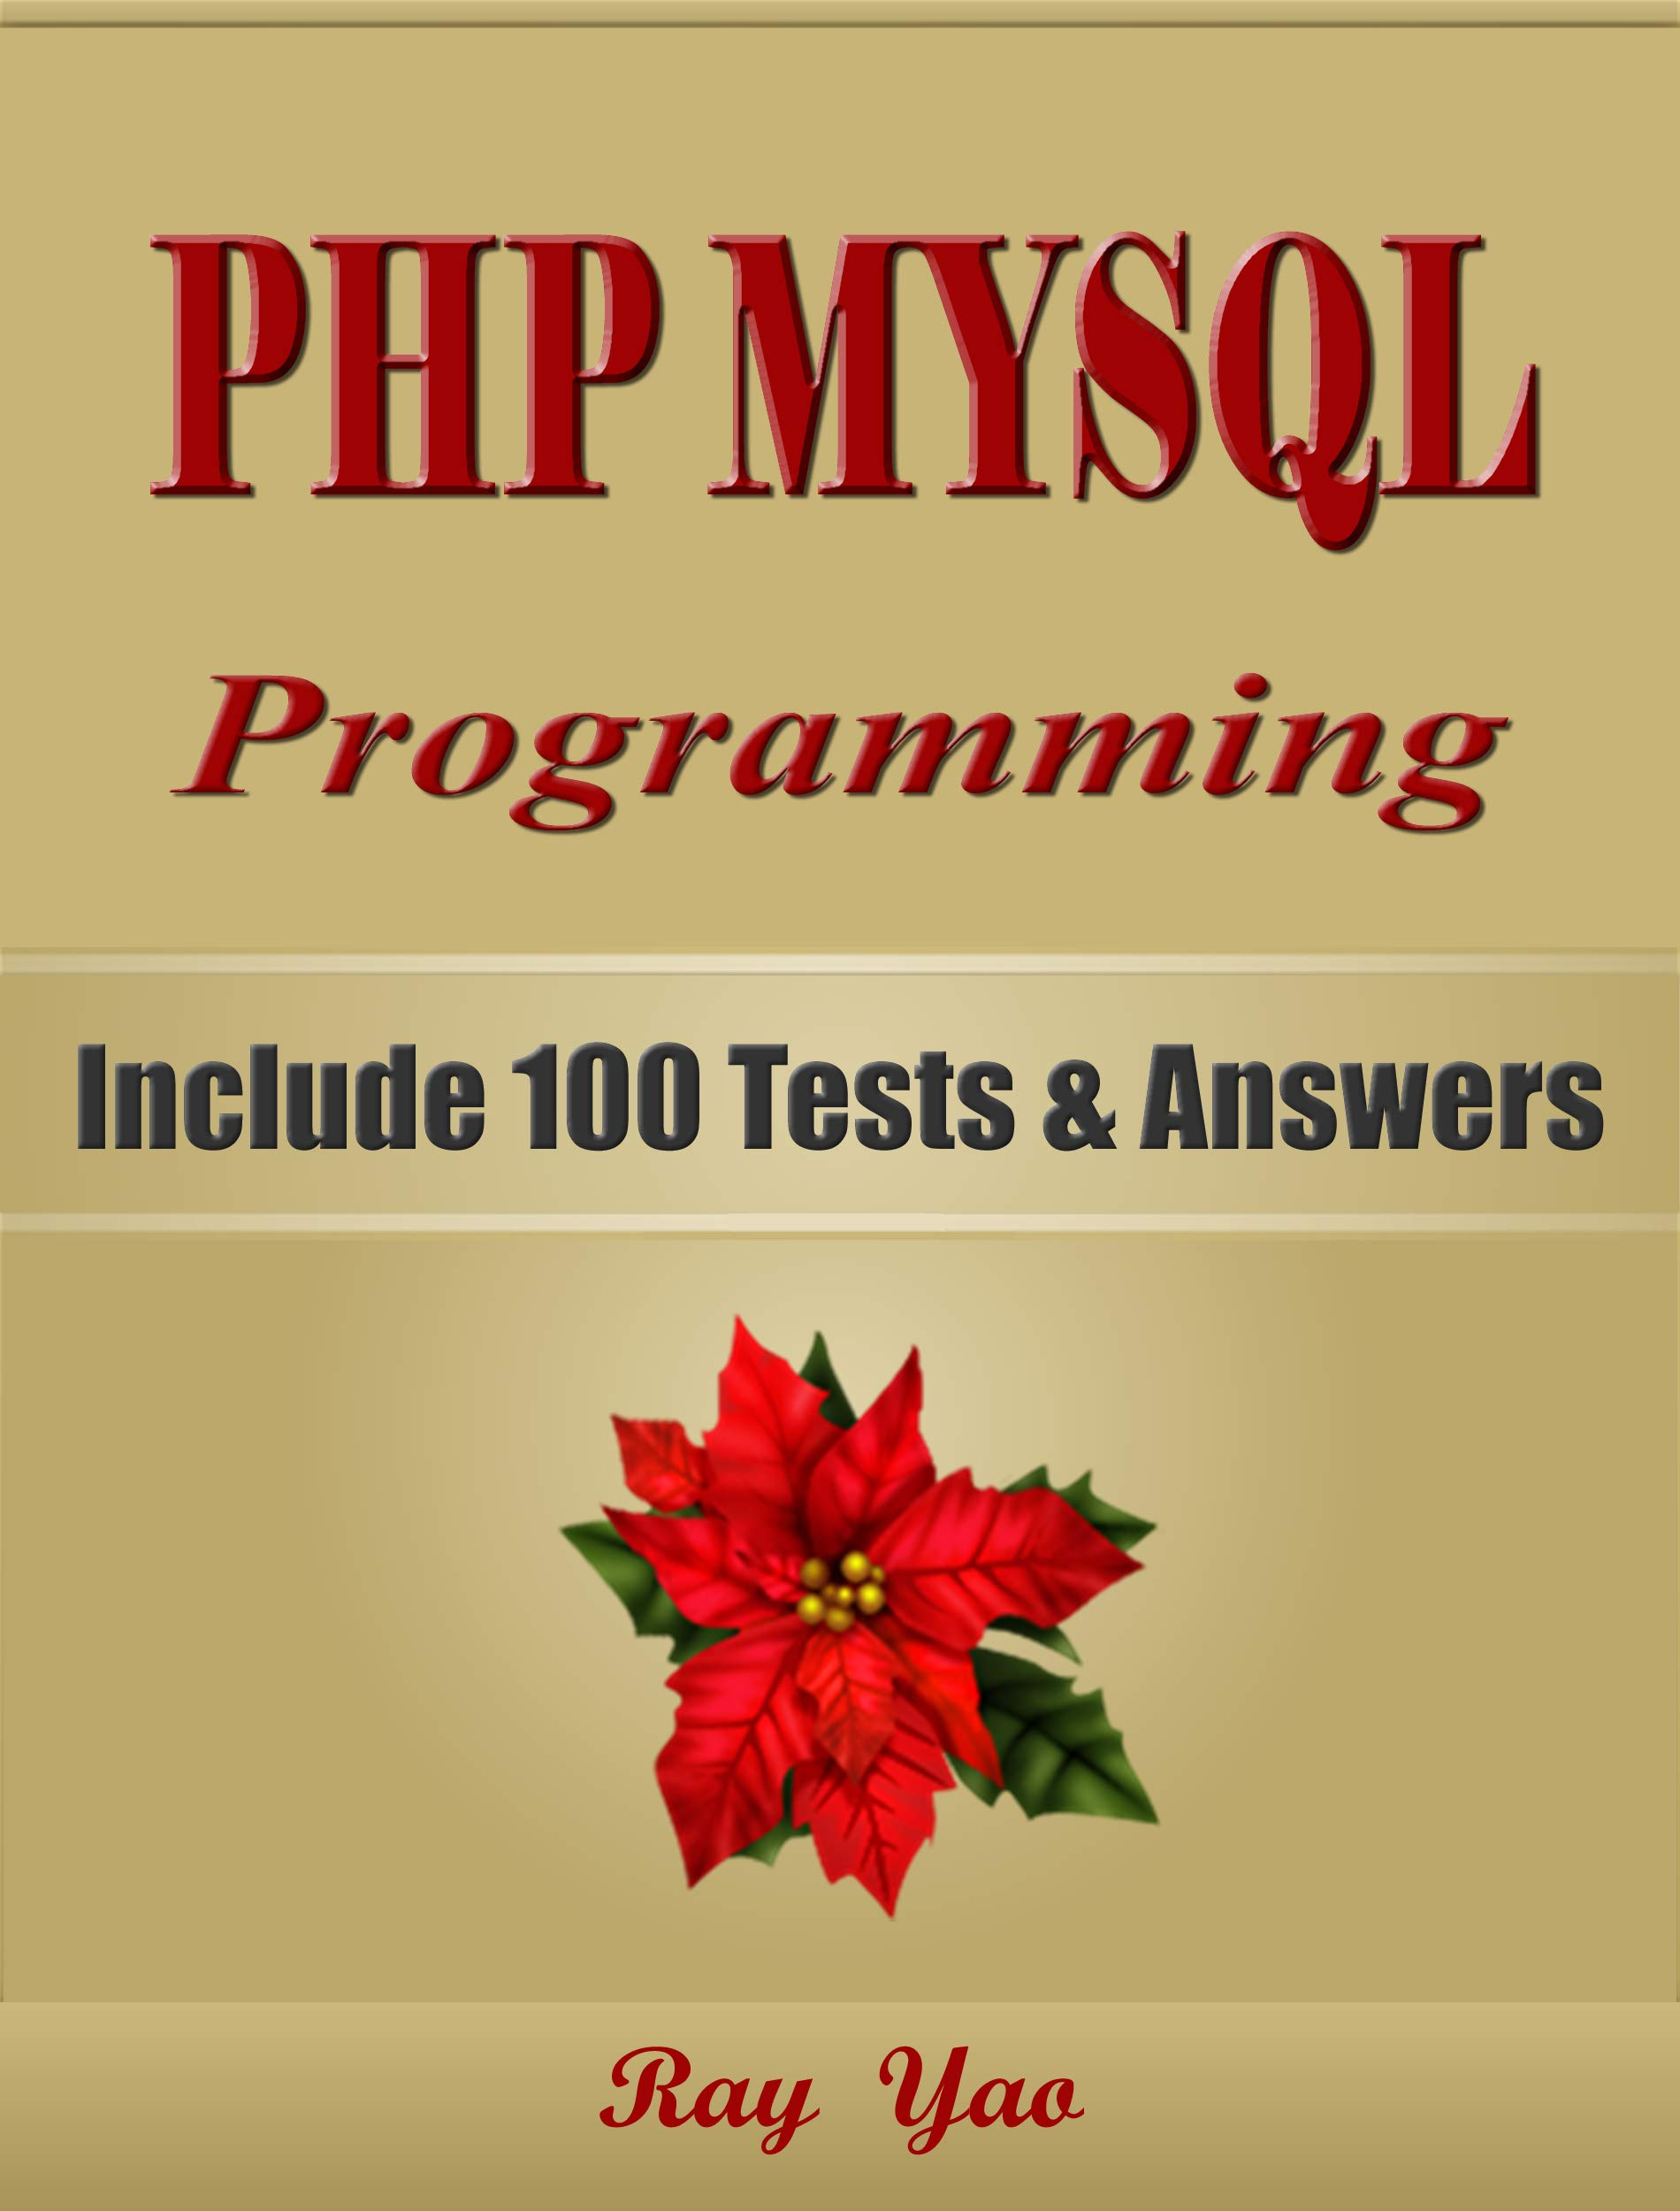 PHP: MySQL Programming, For Beginners, Learn Coding Fast! Include 100 Tests & Answers, Crash Course, Quick Start Guide, Tutorial Book by Hands-On Projects in Easy Steps! An Ultimate Beginner's Guide!